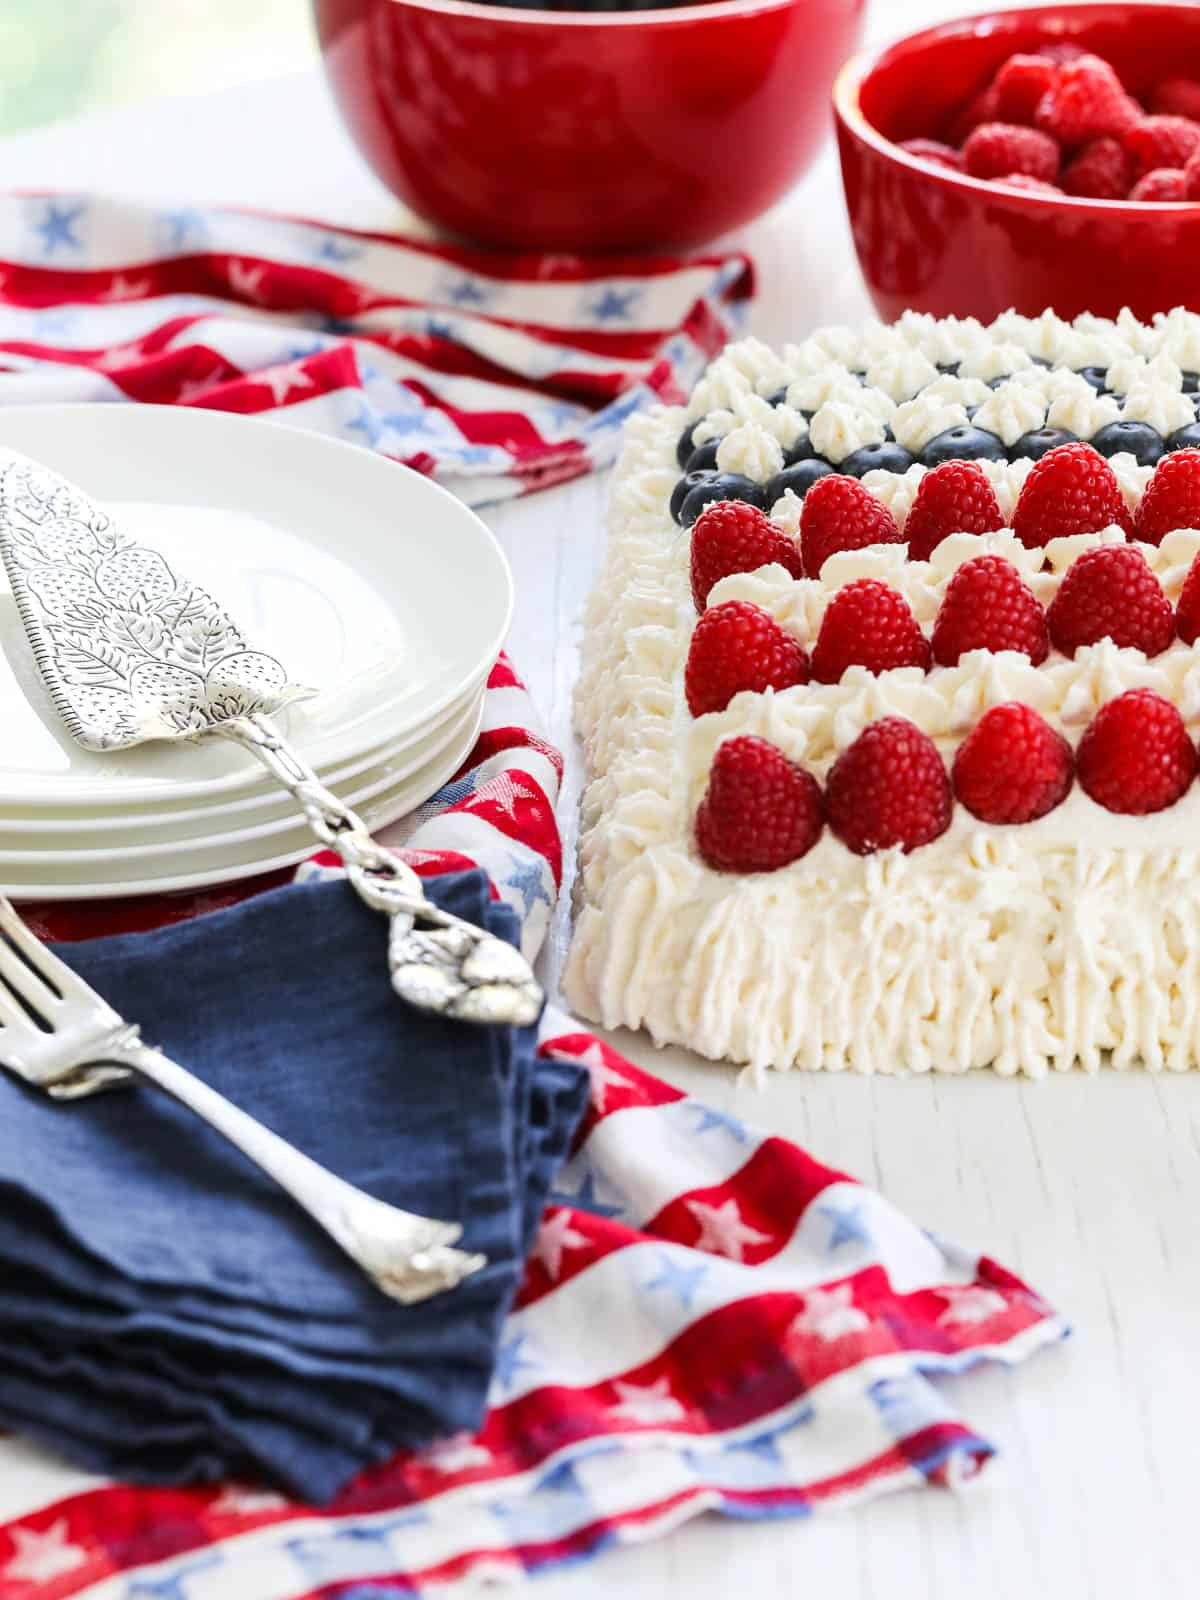 Close up of the corner on a Flag Cake decorated with white frosting, raspberries, and blueberries.